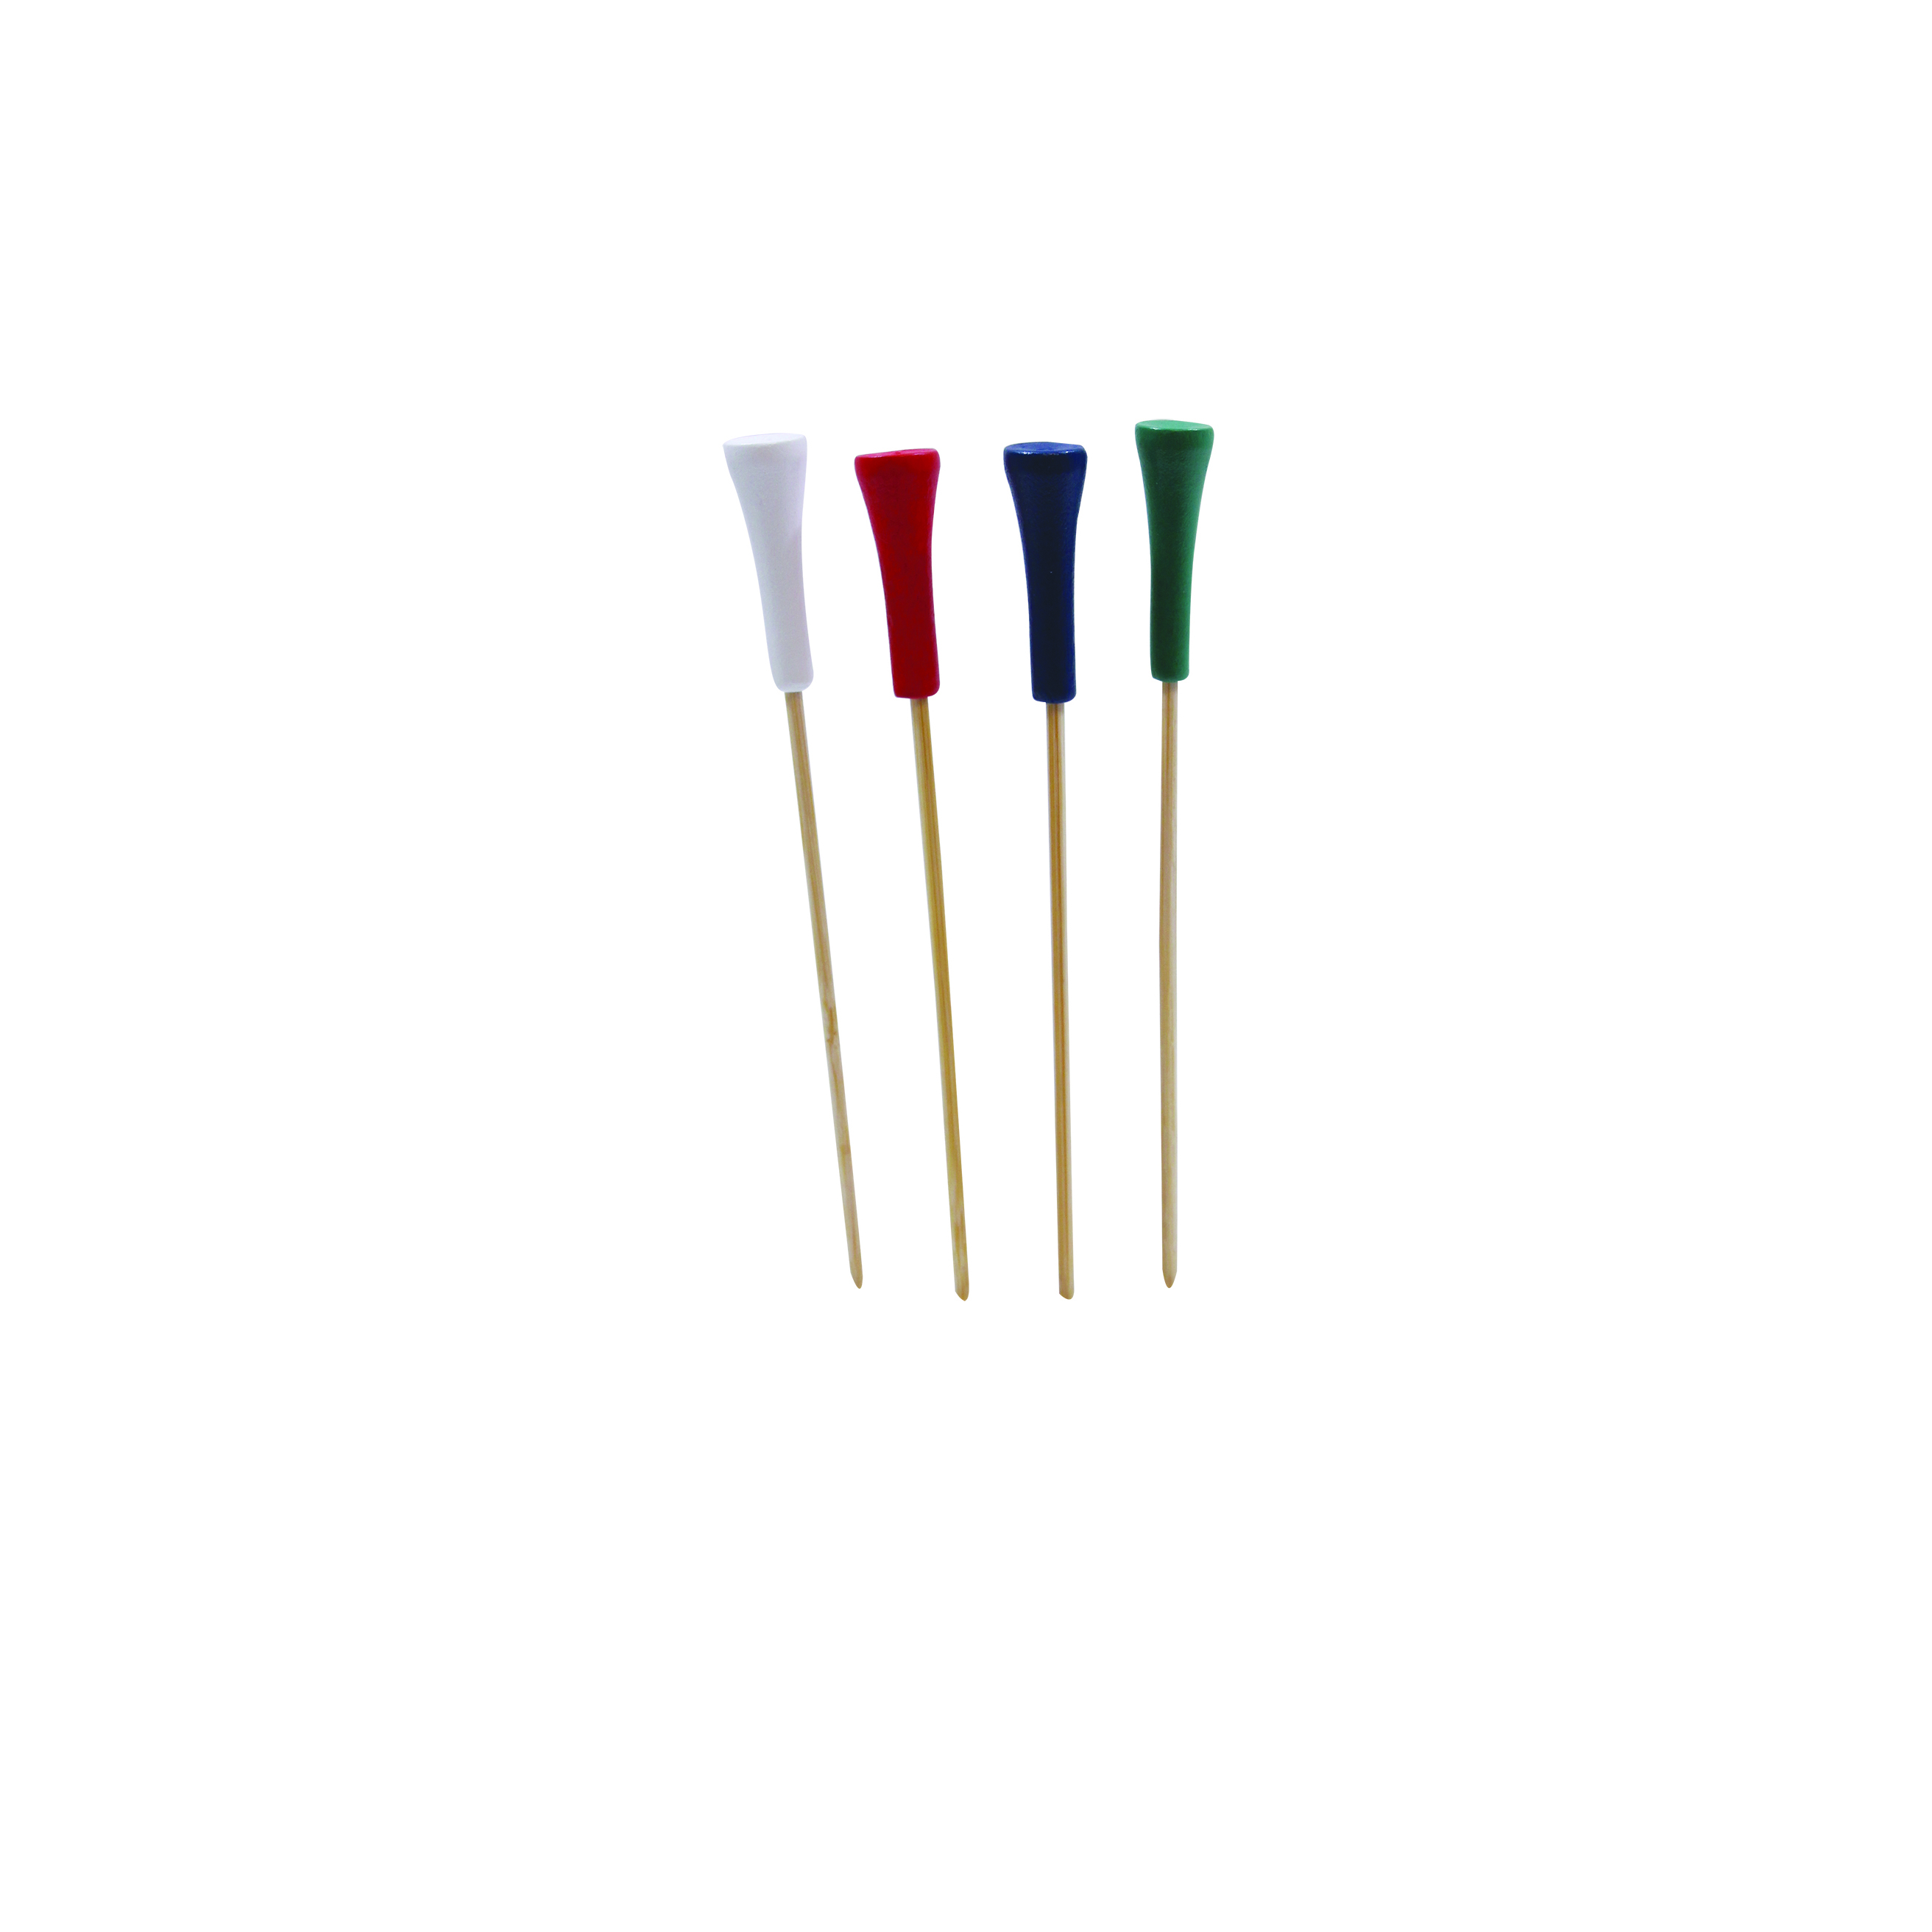 3900-13 TableCraft Products BAMSP345 picks, wood